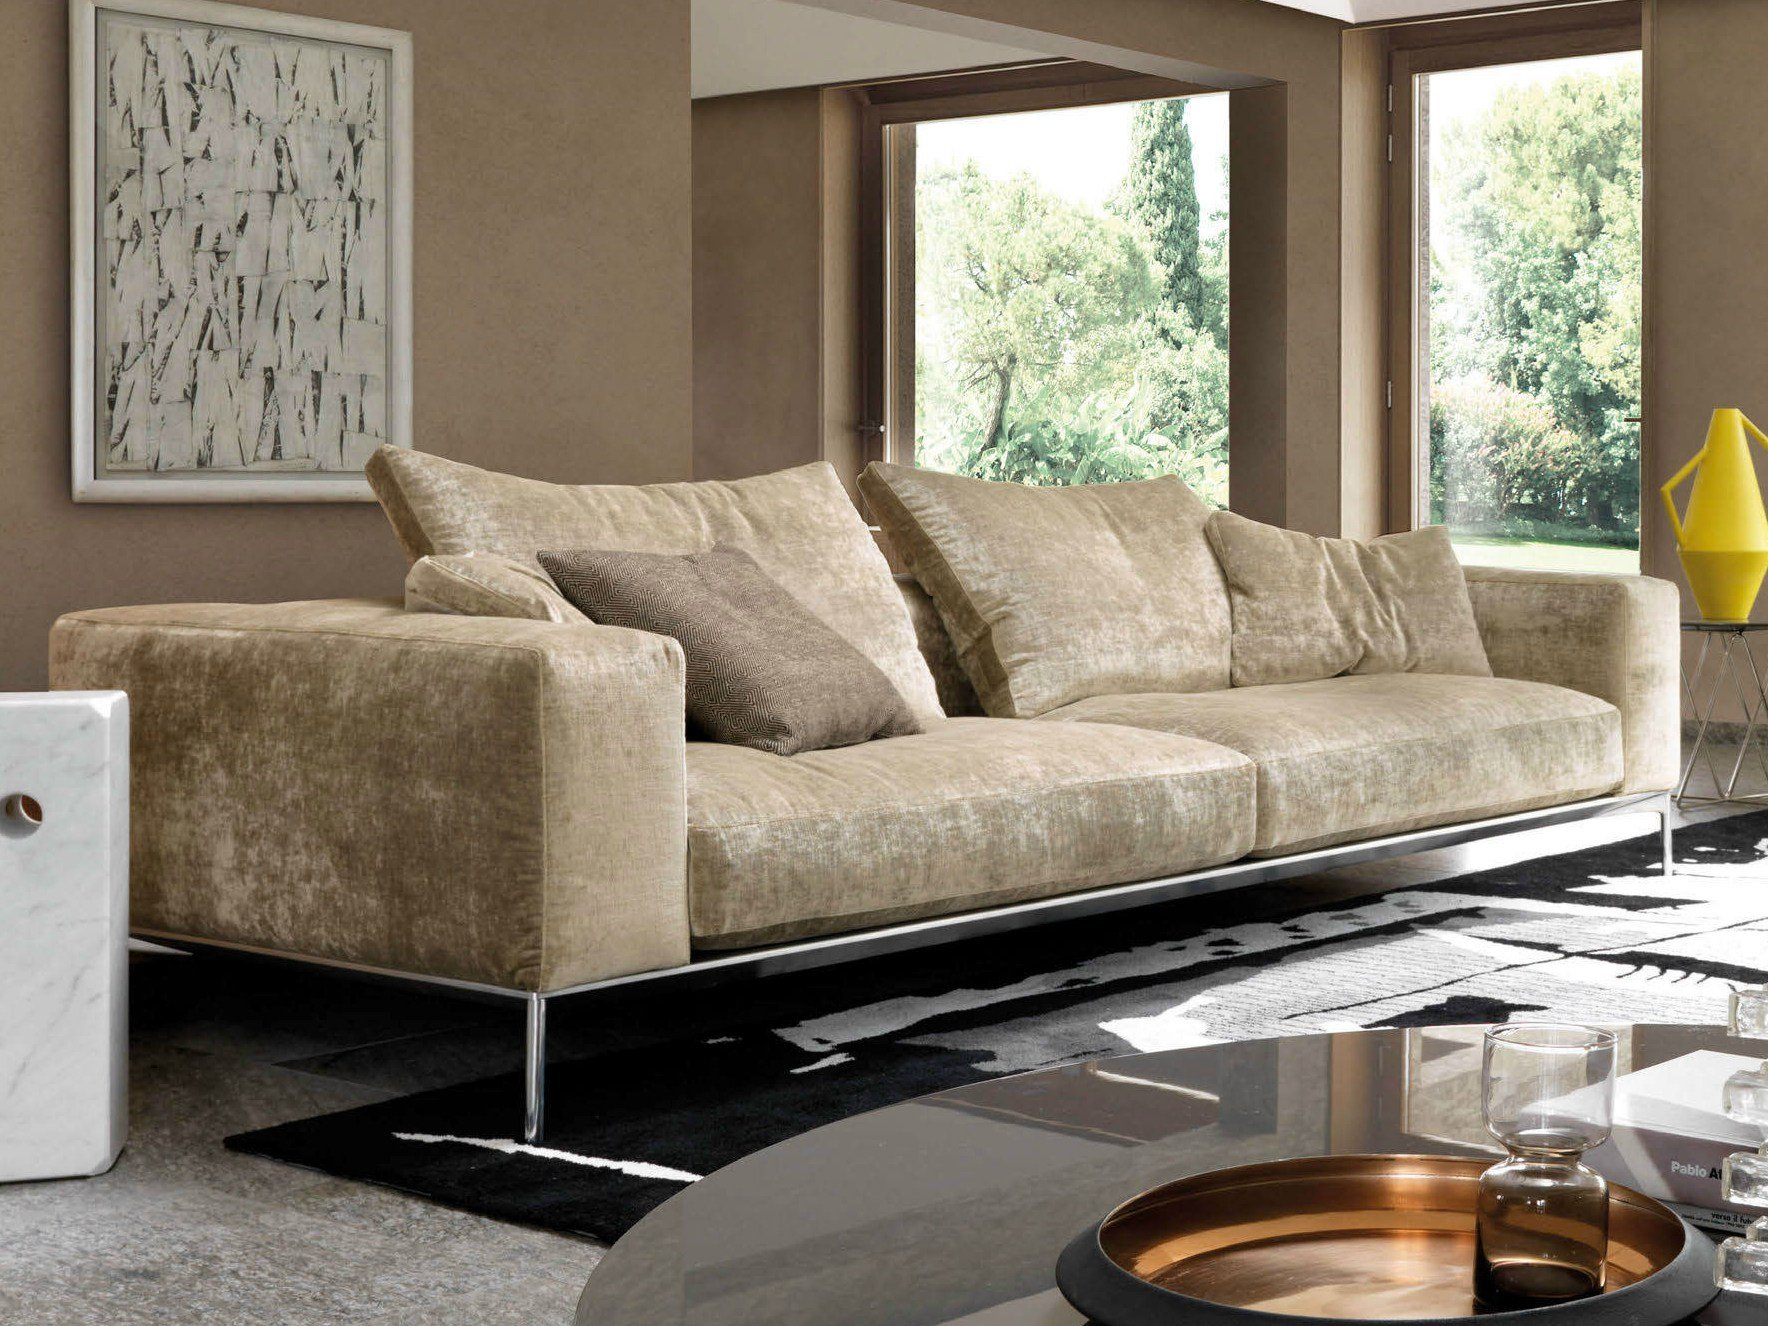 sofa with removable cover savoye by d sir e design marc sadler. Black Bedroom Furniture Sets. Home Design Ideas